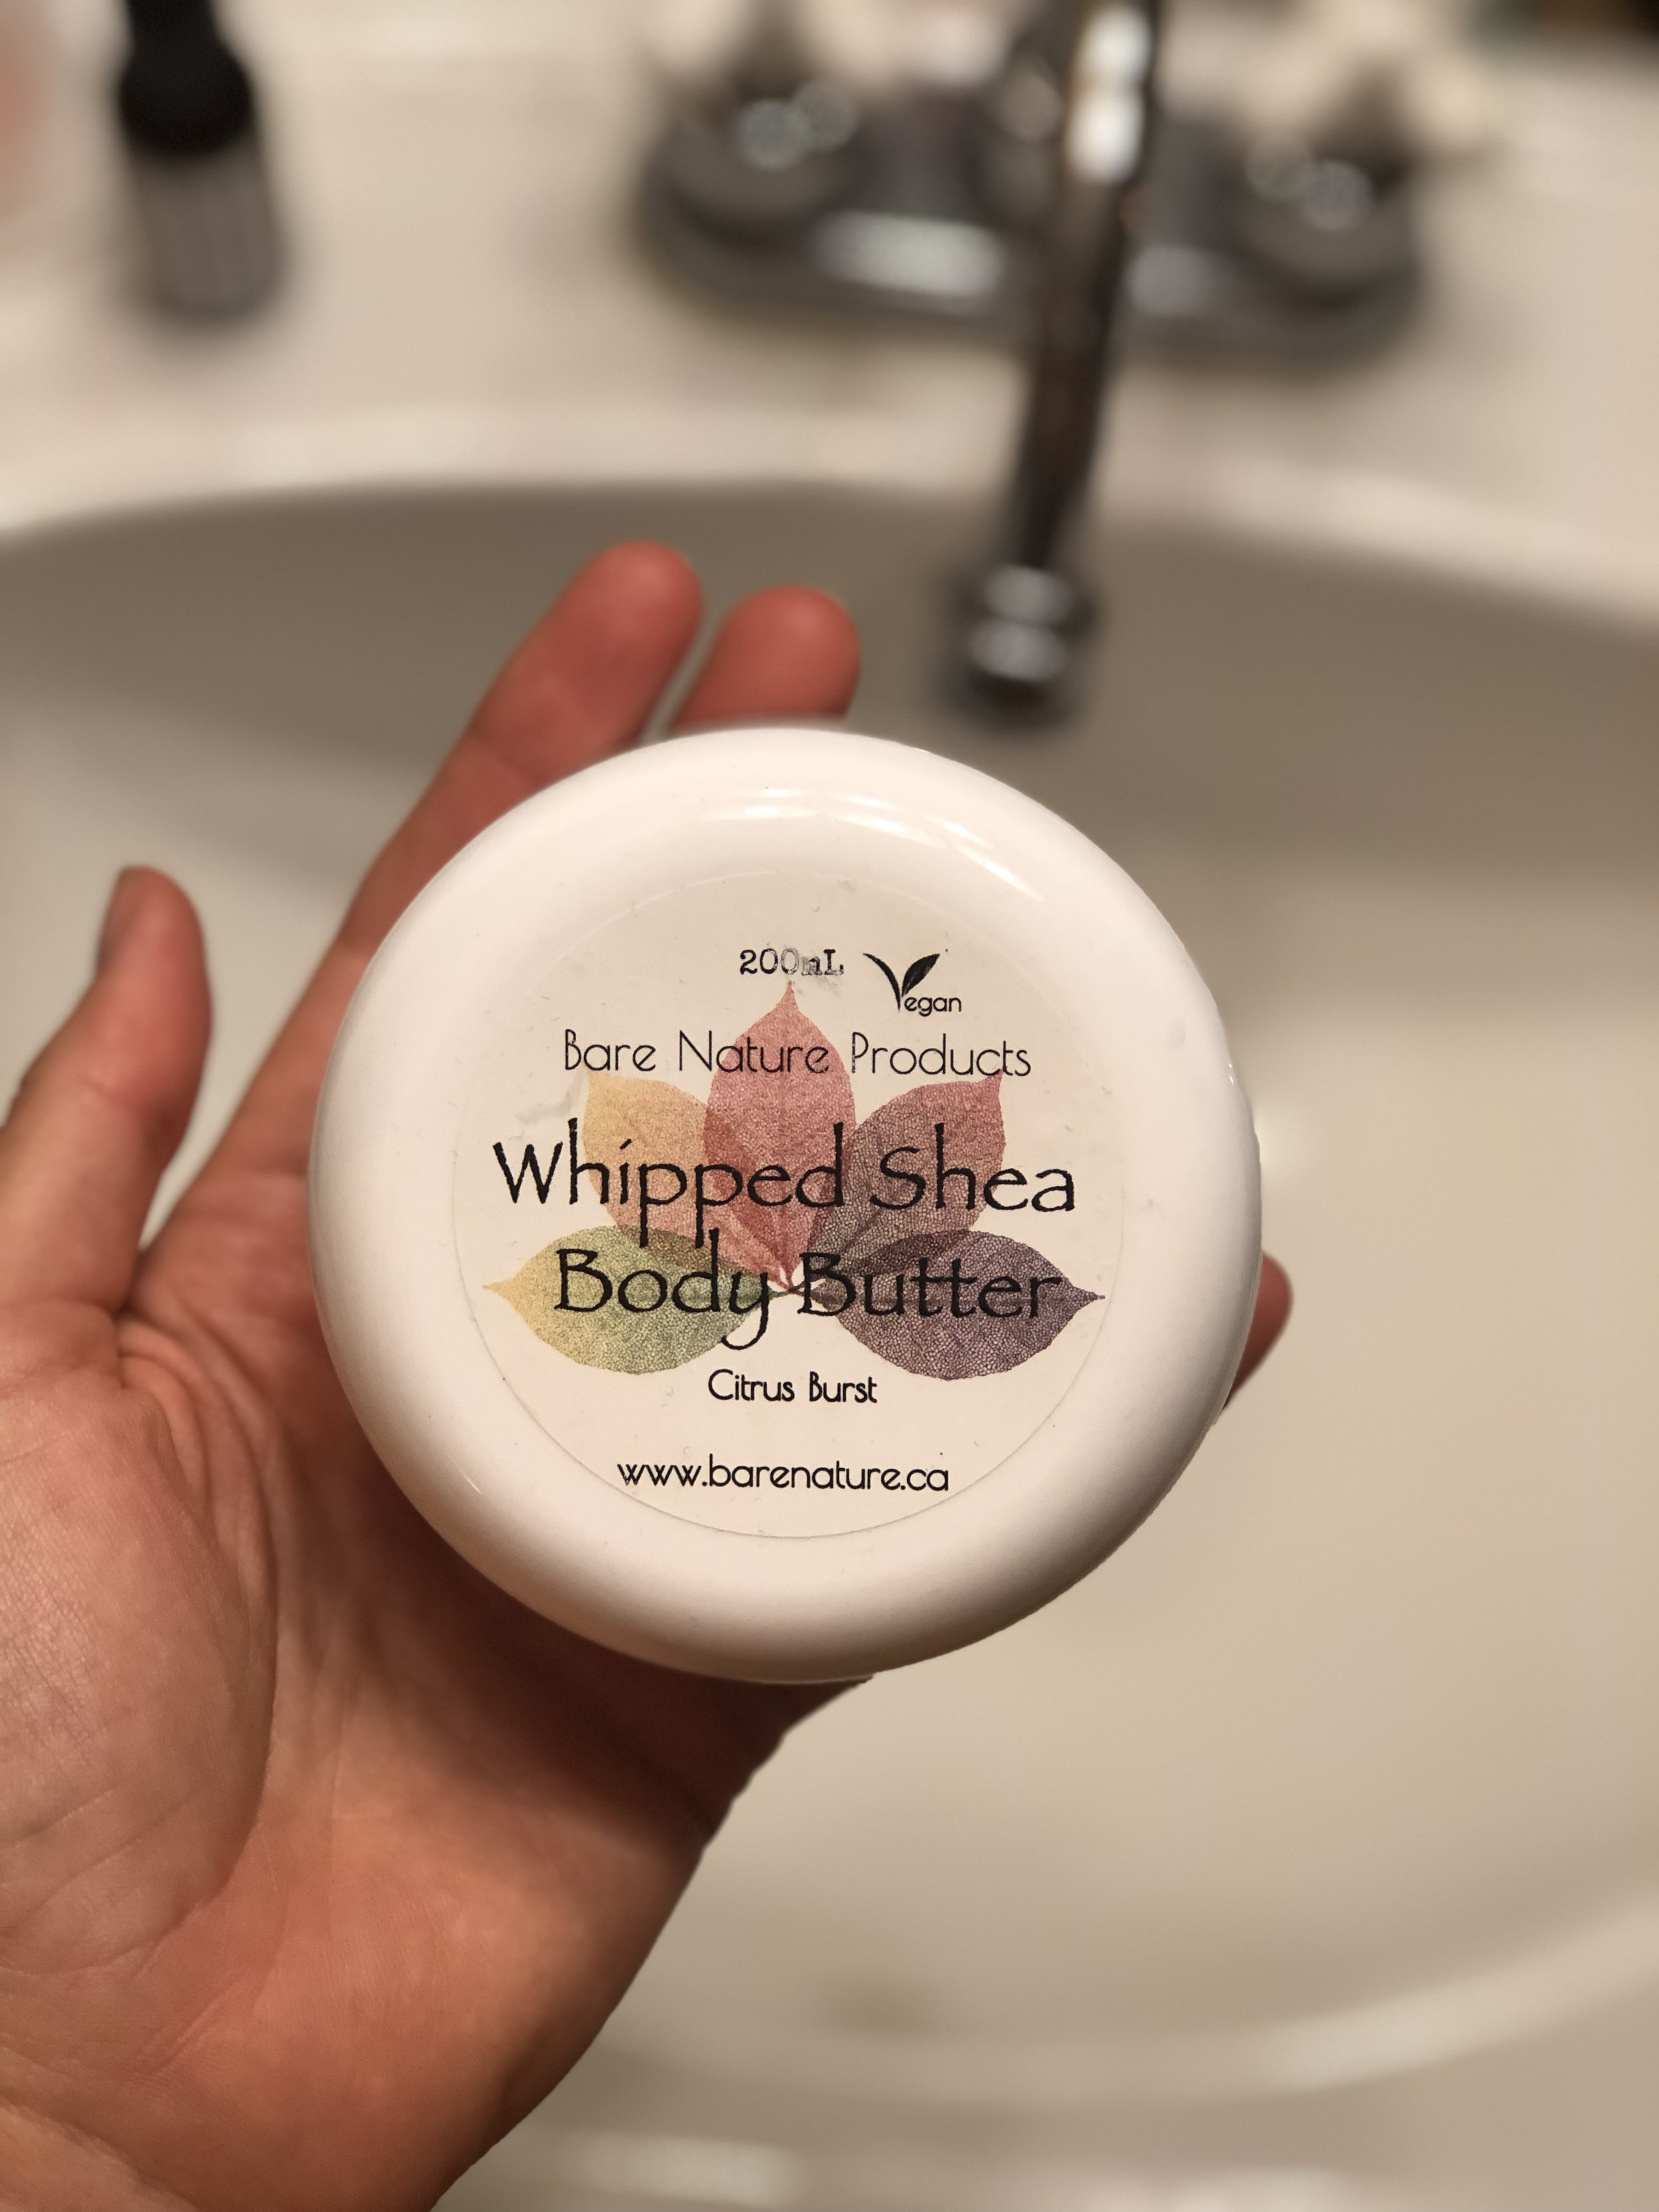 another bare nature product and SUPER UBER delicious smelling. citrus burst says it all. this is perfect for after all the exfoliating and perhaps shaving of legs in the tub.